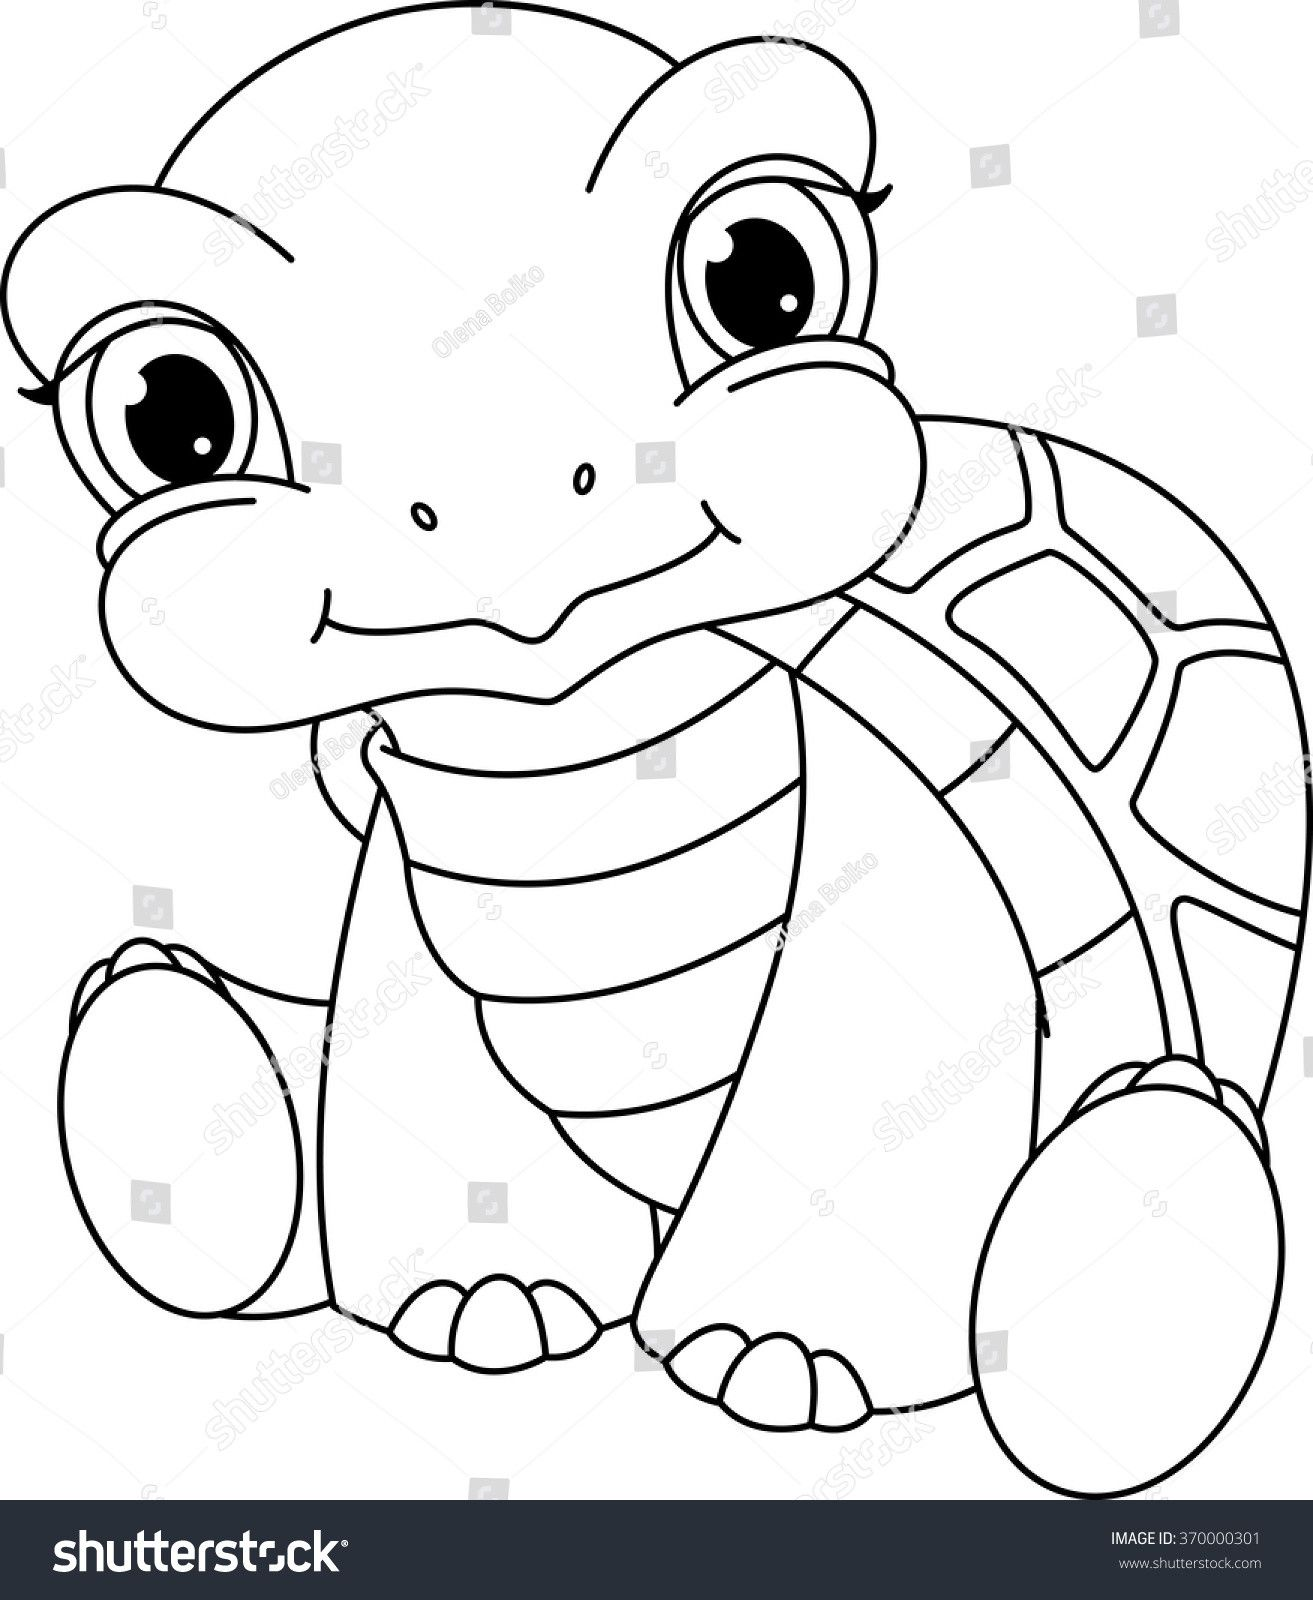 Baby Turtle Coloring Page - youngandtae.com  Turtle drawing